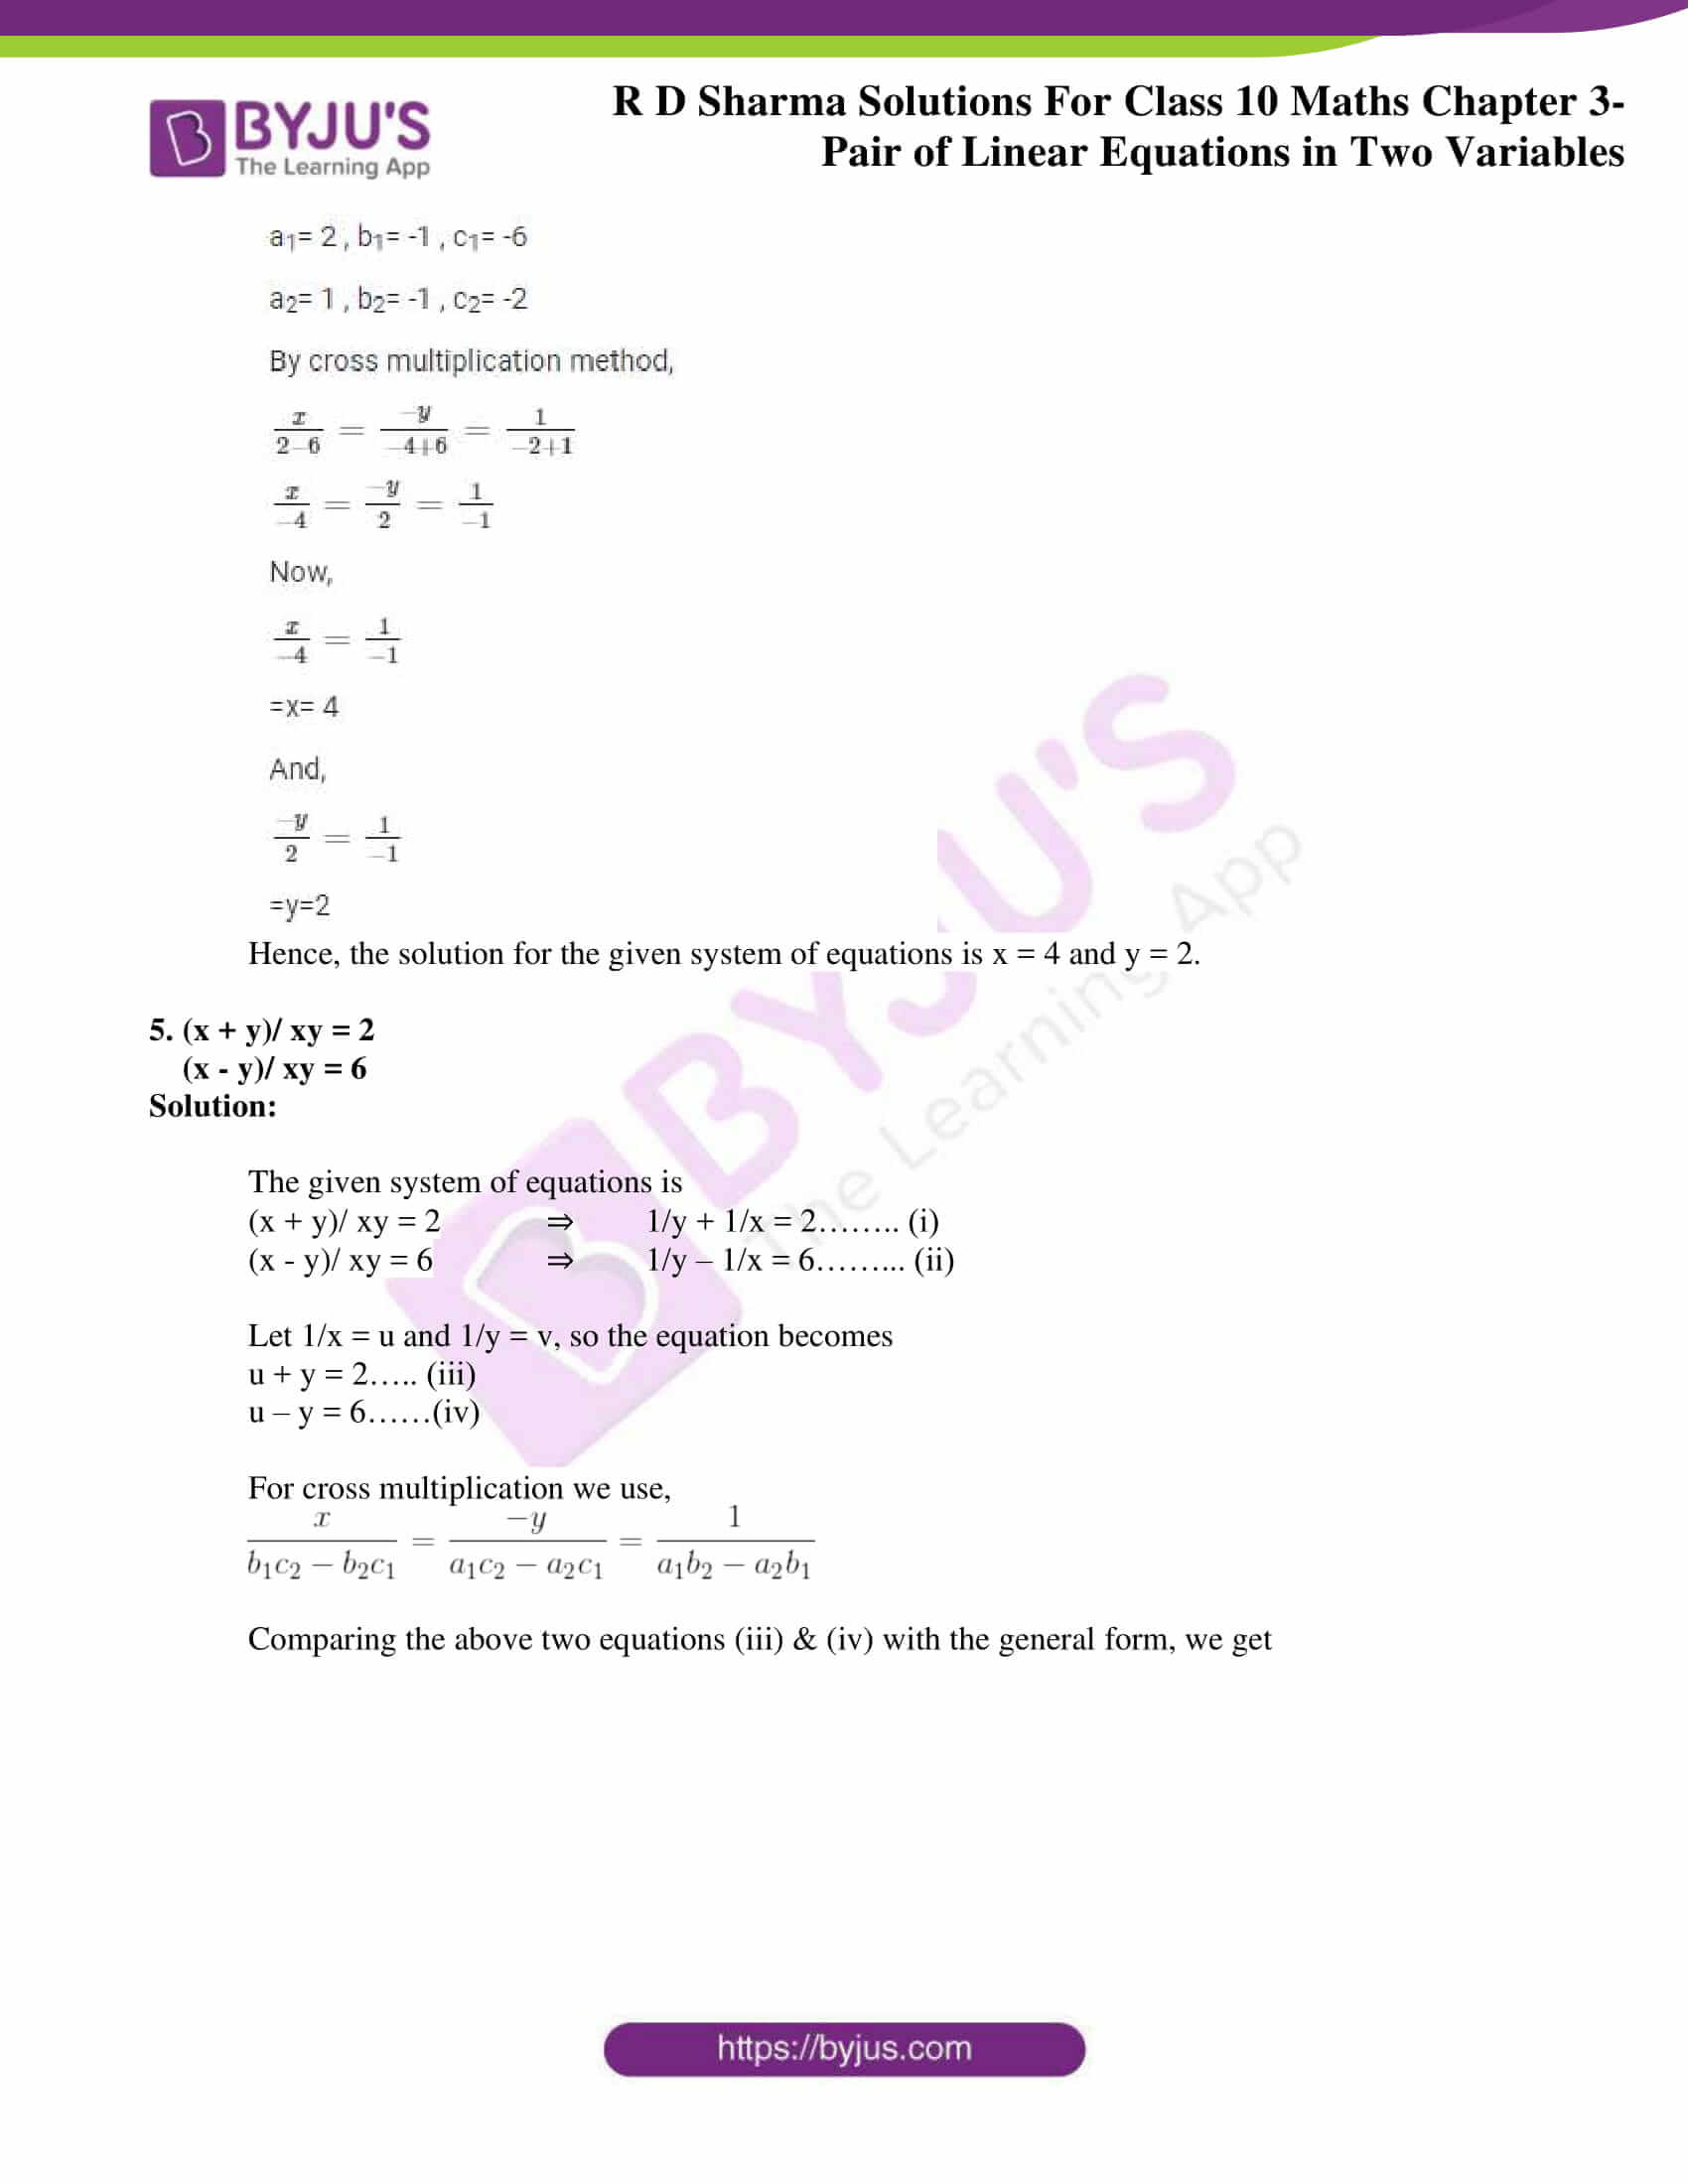 rd sharma solutions for class 10 chapter 3 ex 3.4